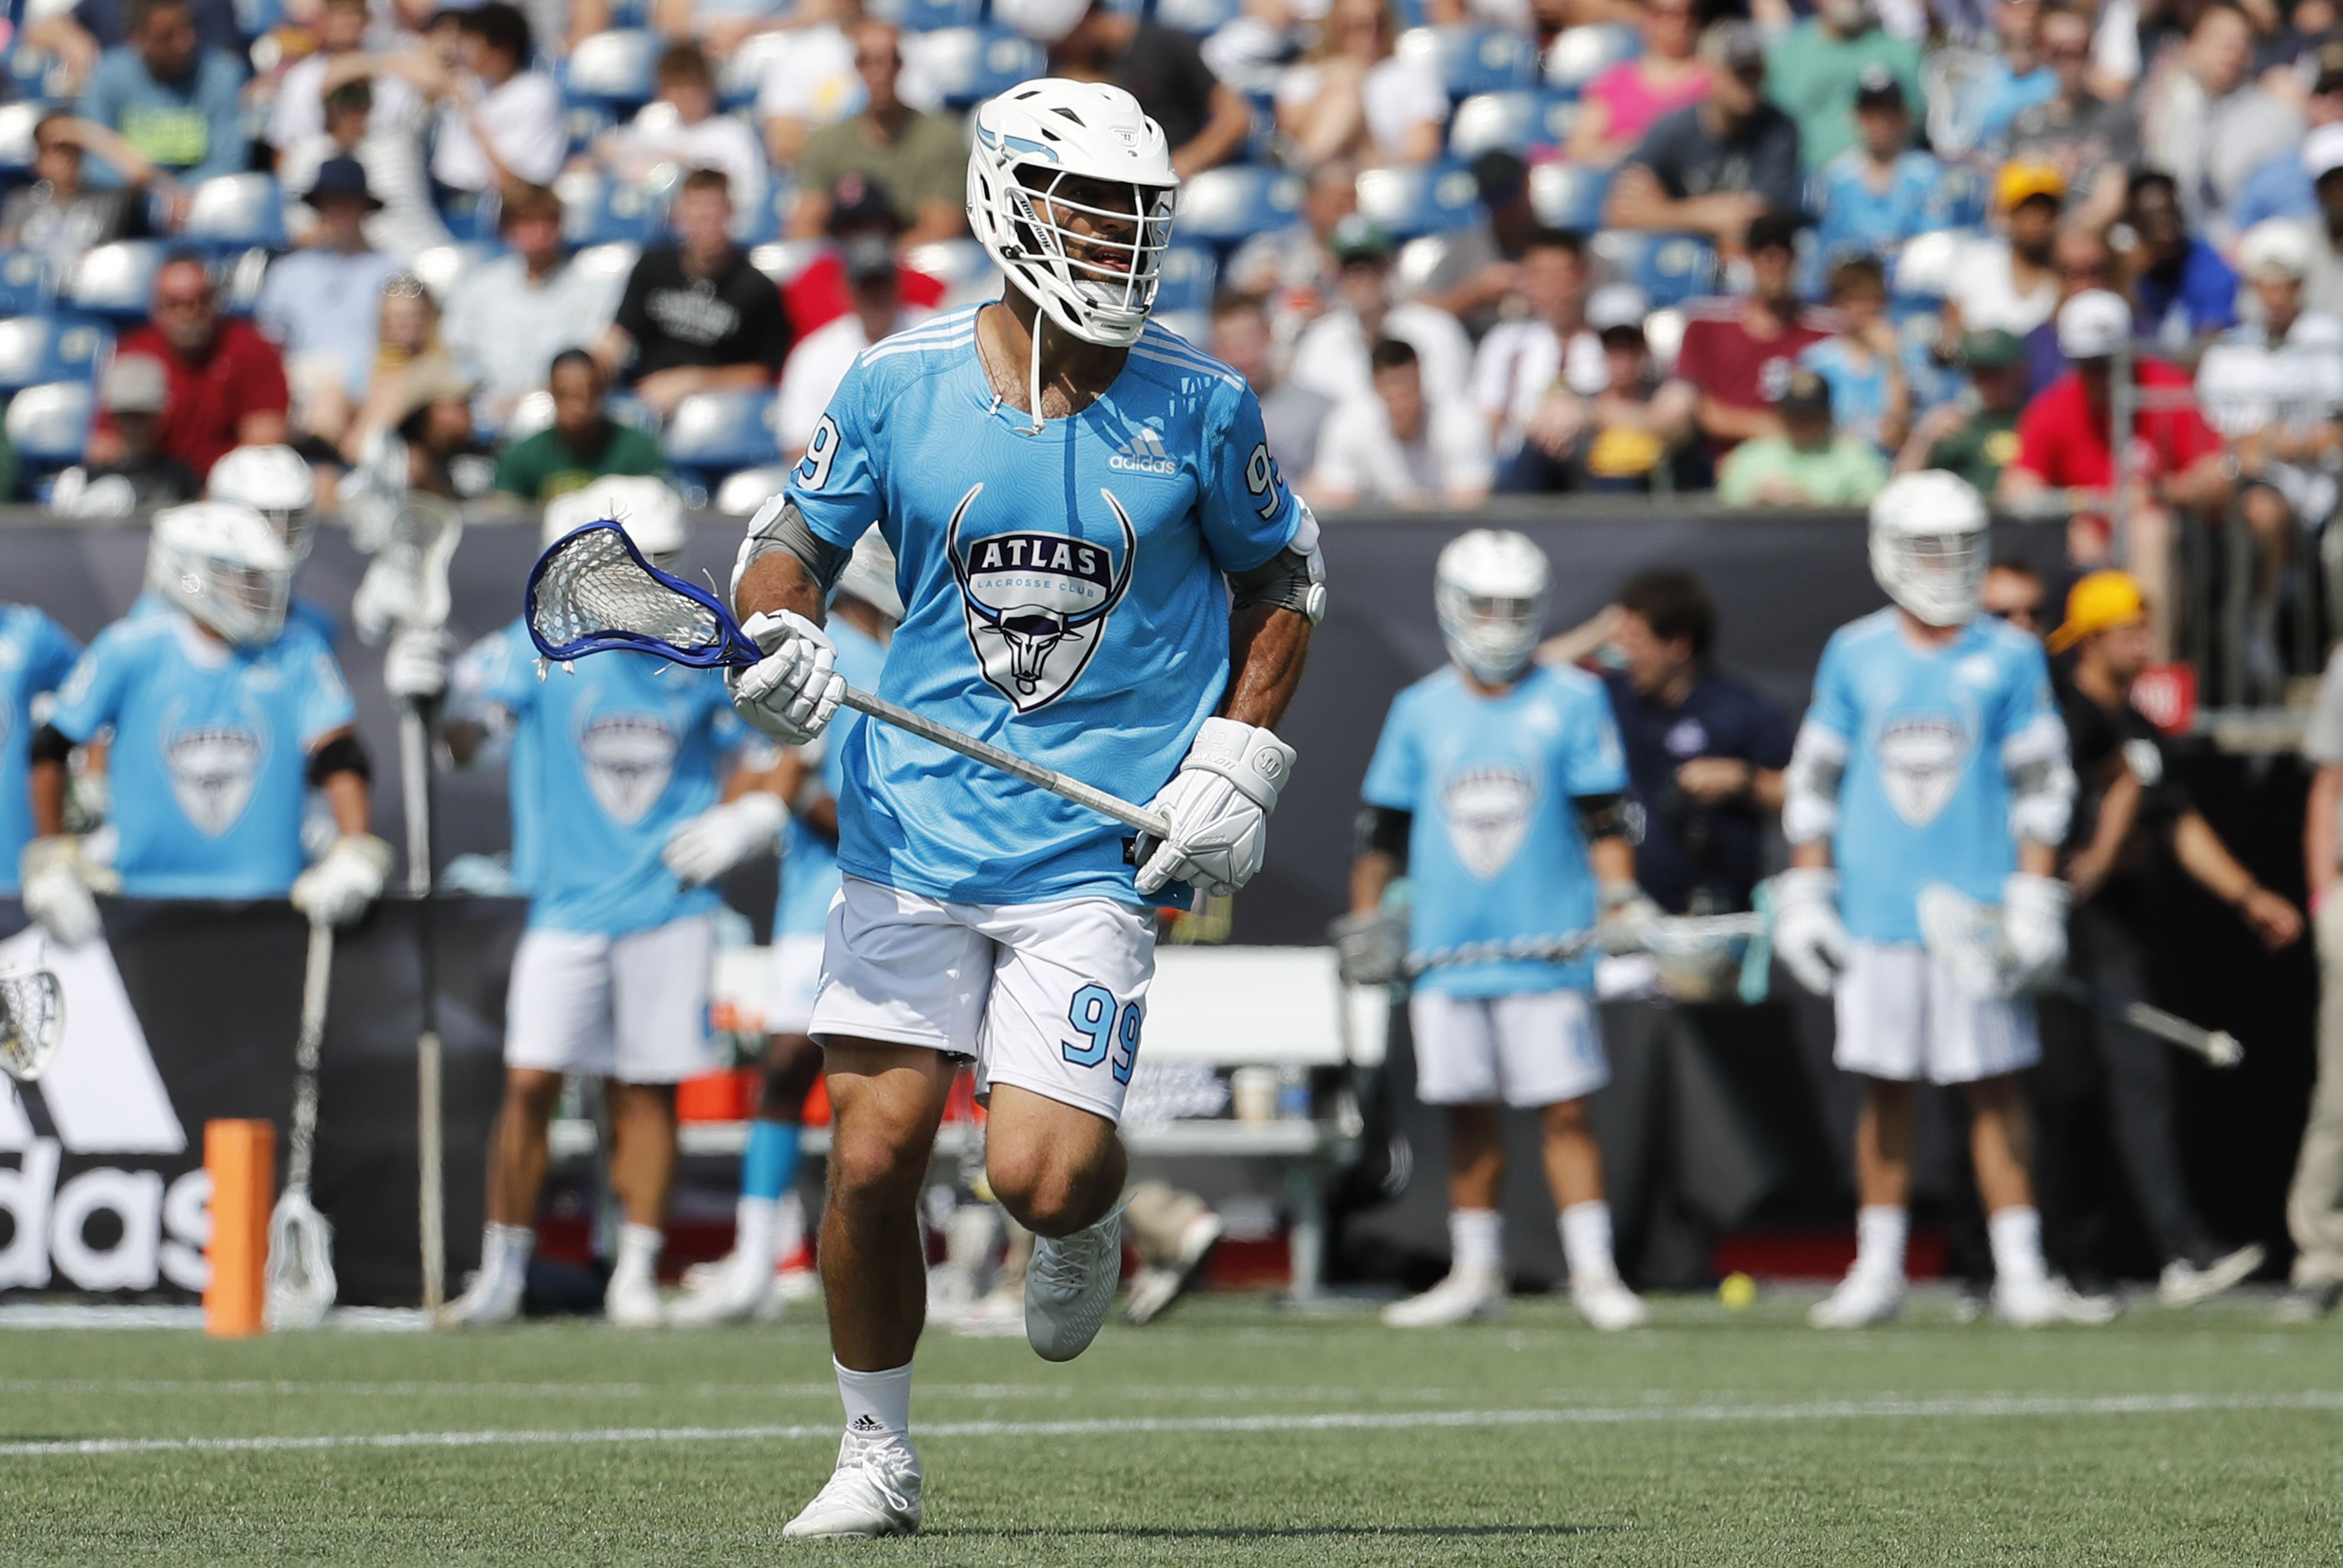 Lacrosse star Paul Rabil says only one pro league will survive